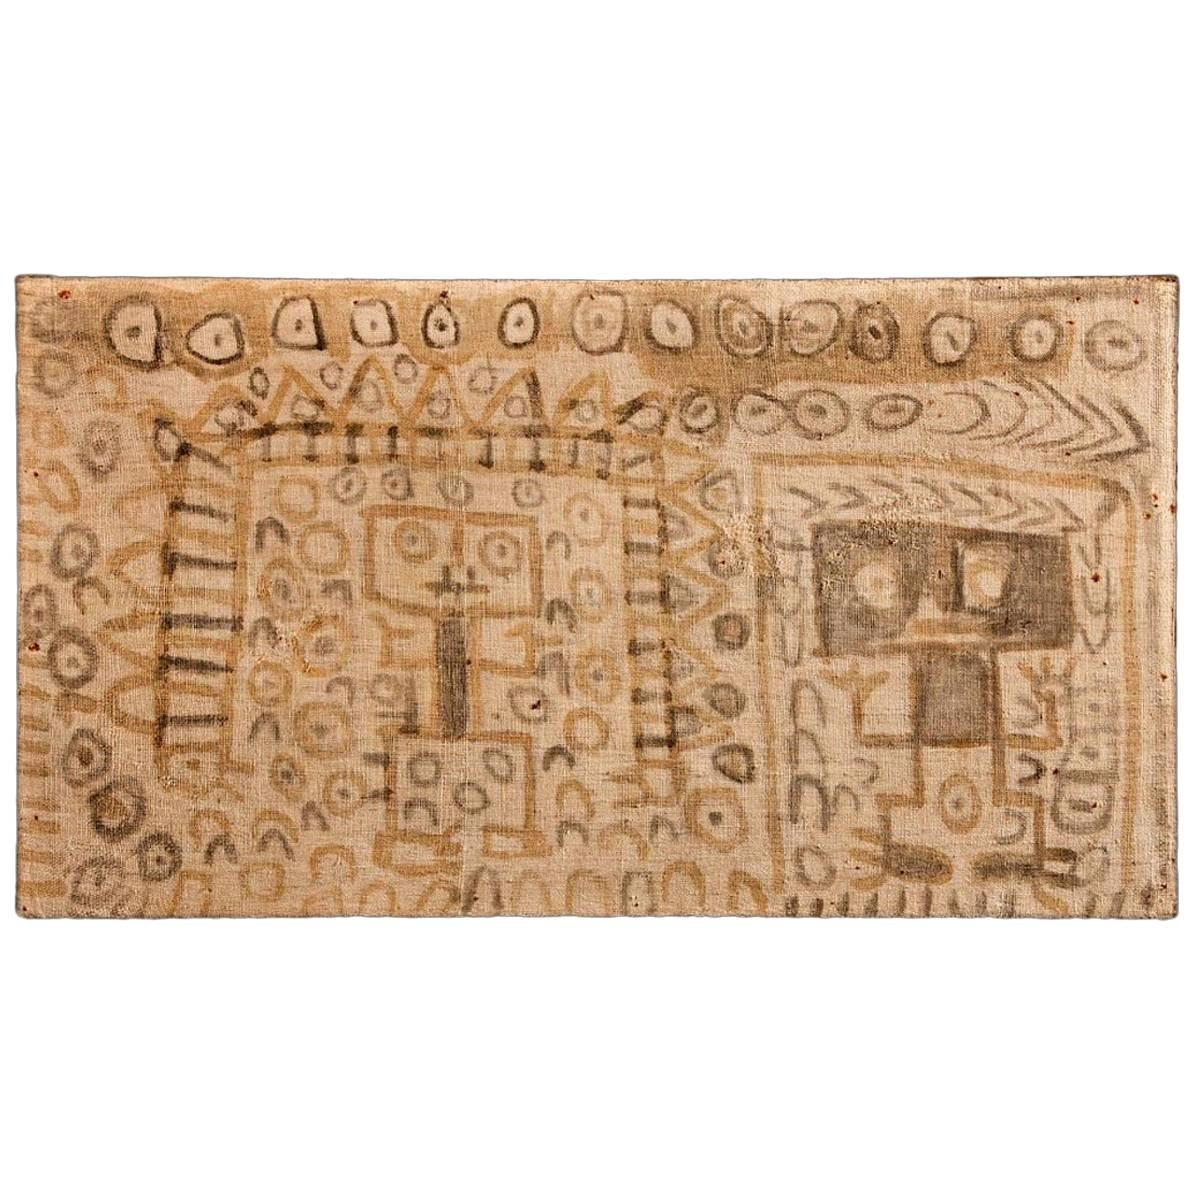 Pre-Columbian Chancay Painted Panel with Two Figures Side by Side